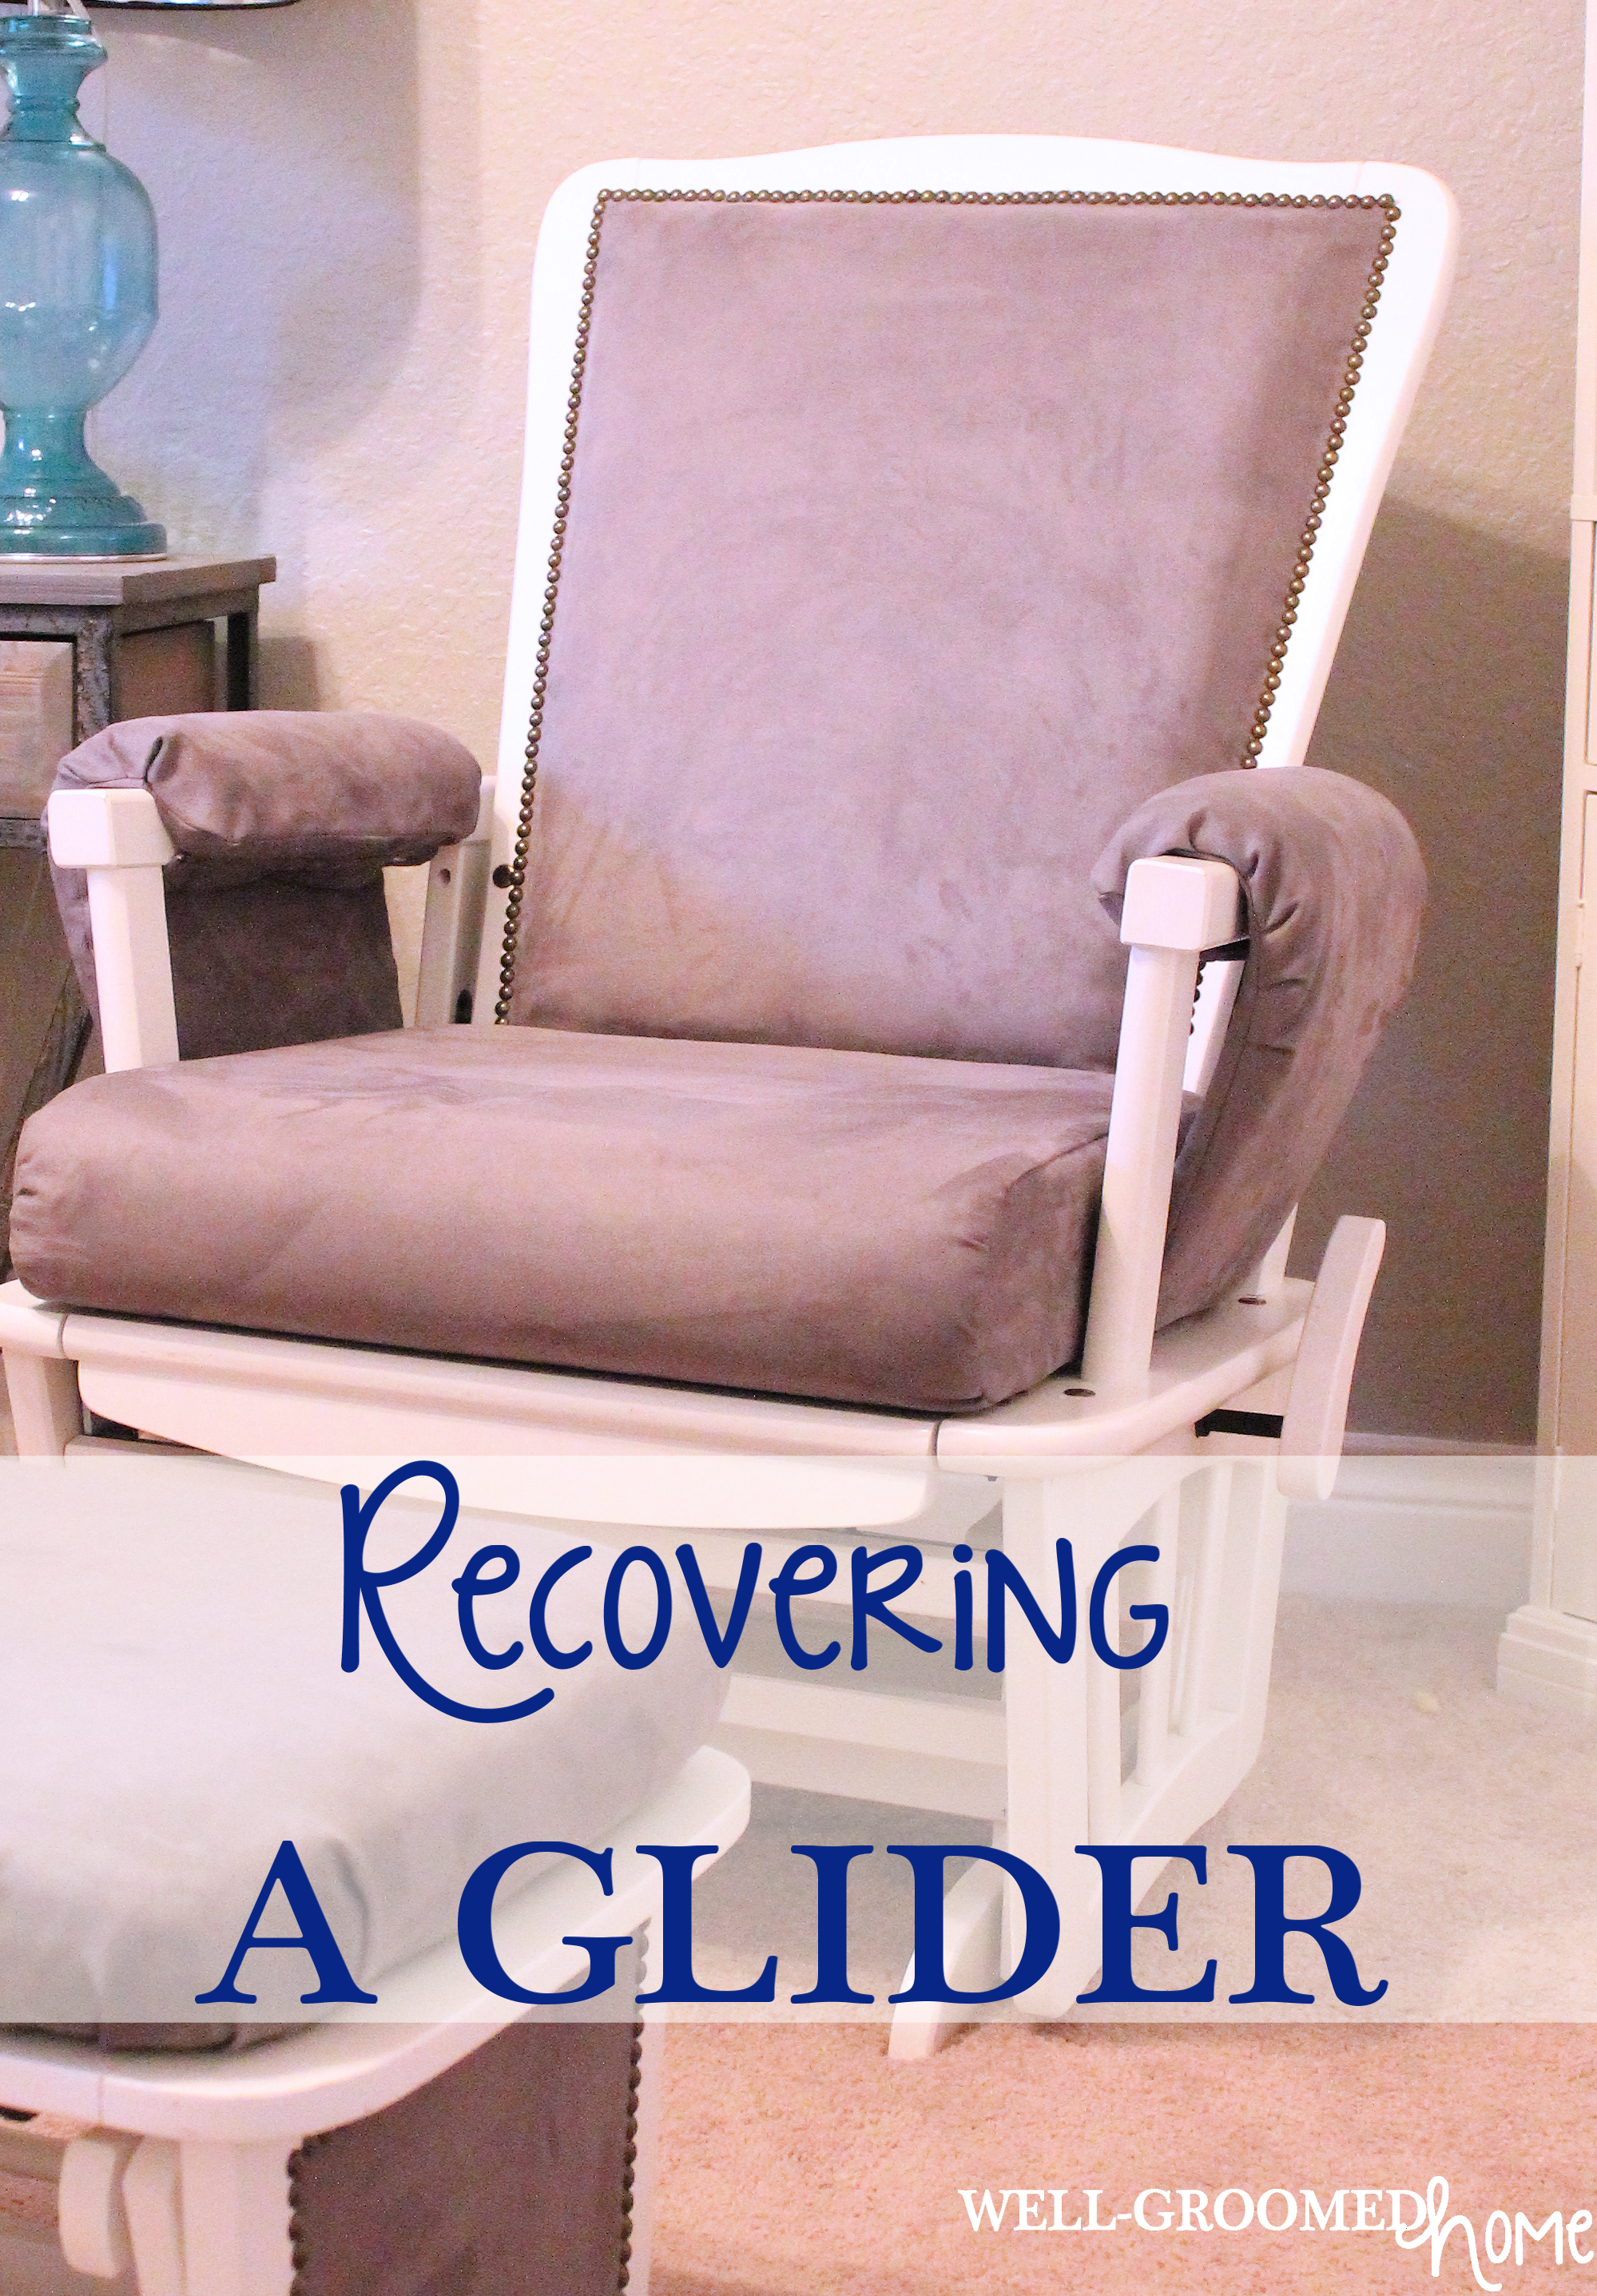 RECOVERING A GLIDER